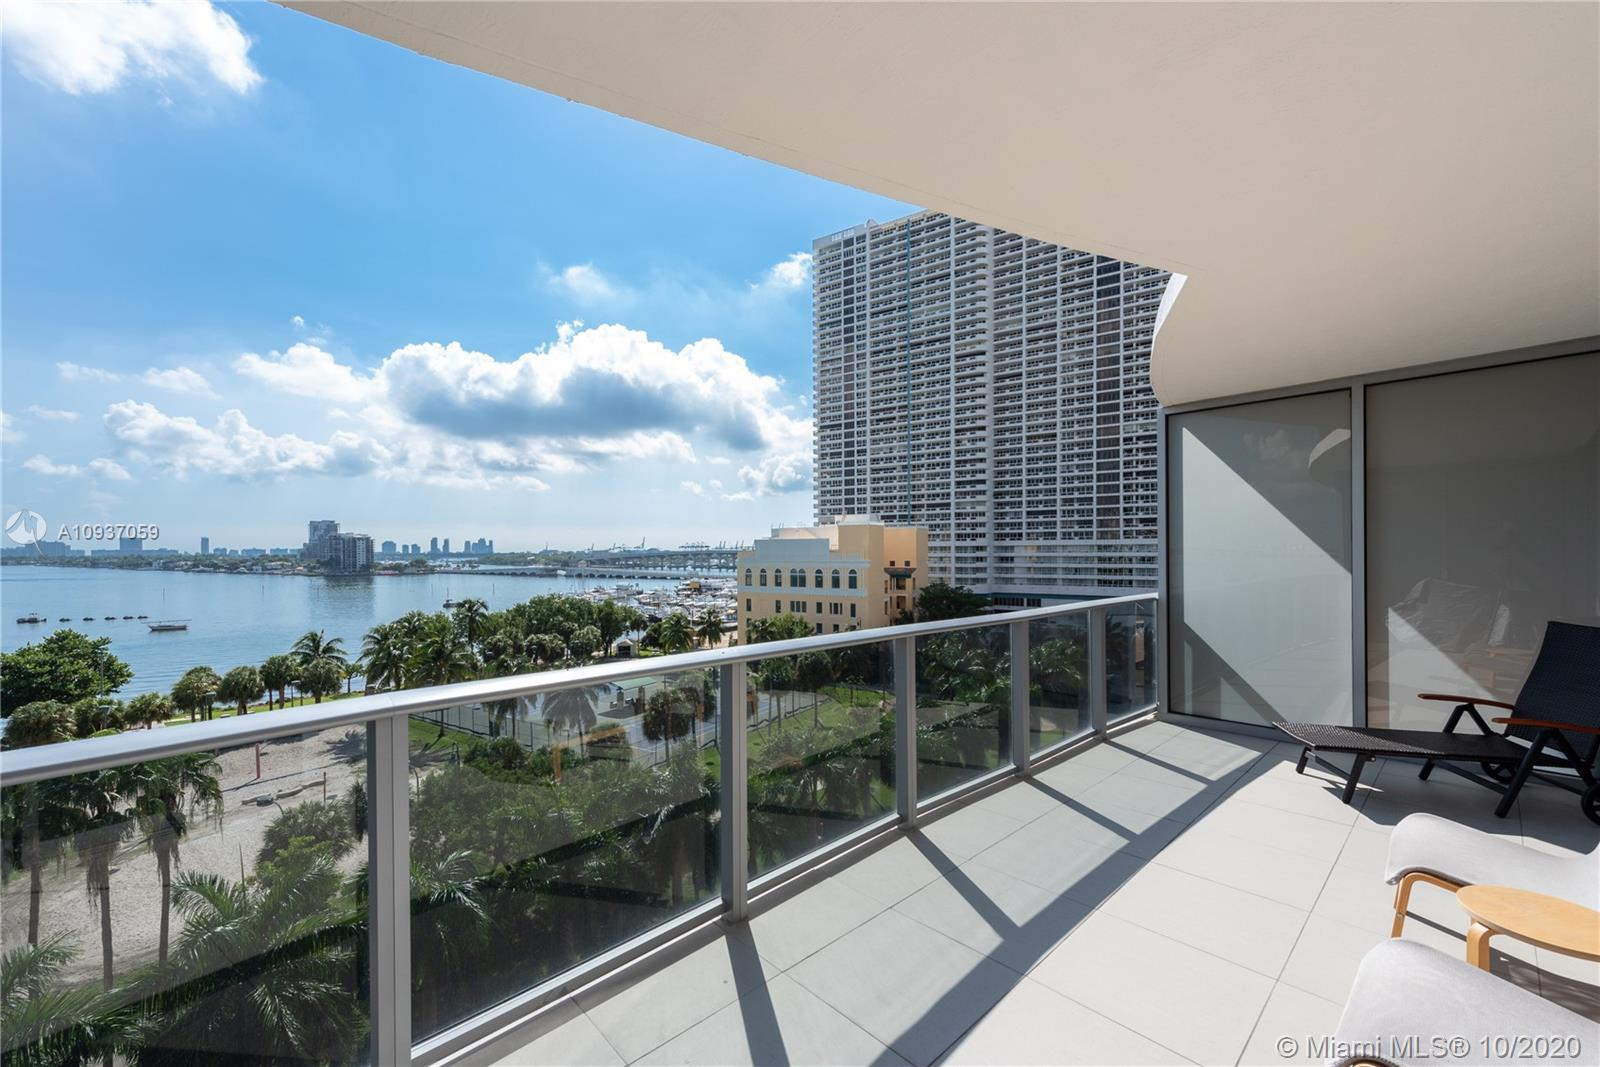 THE UNIT: One bedroom, one full bathroom & one half bath. Oversized balcony facing the bay & park. F